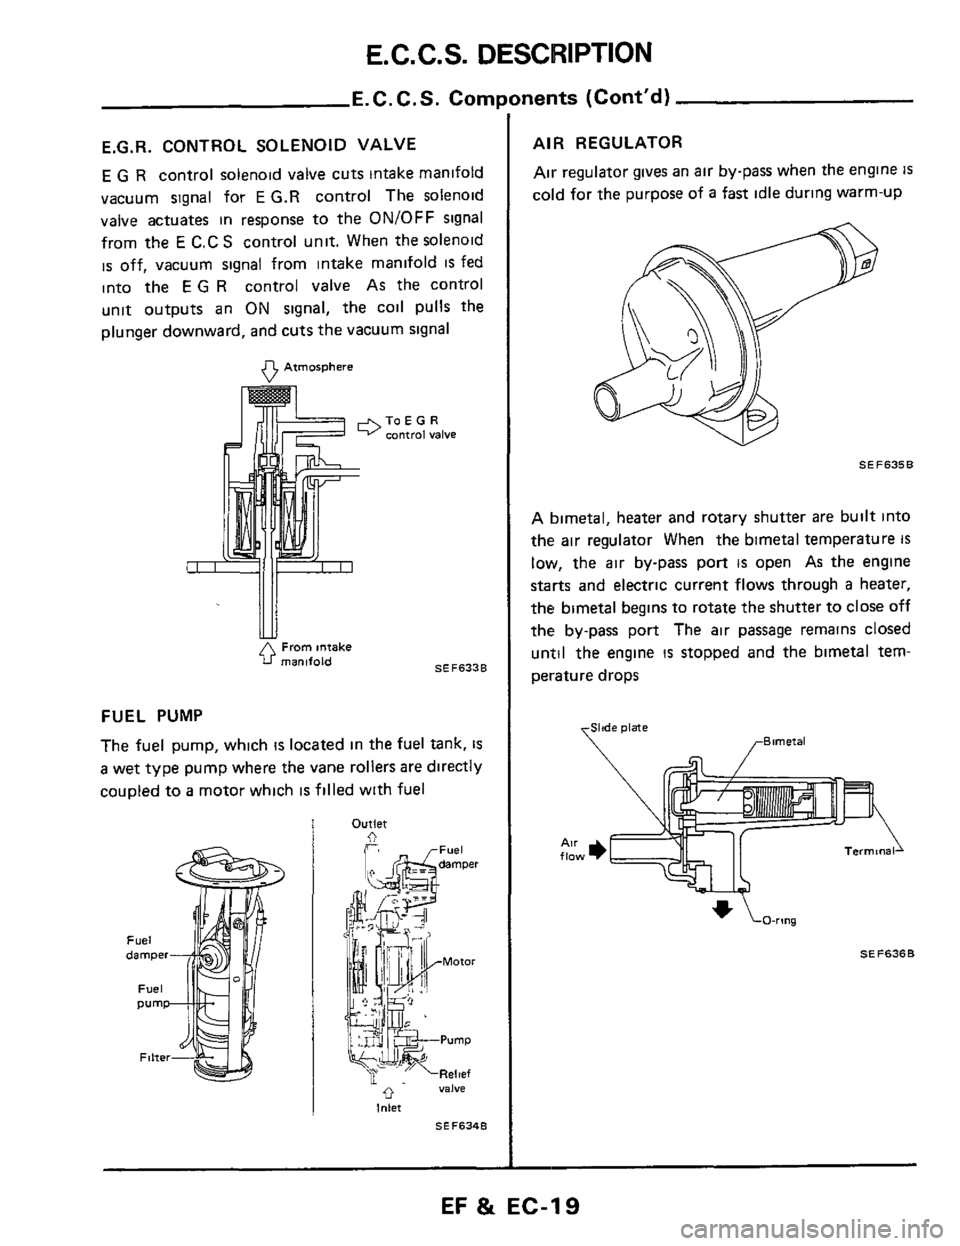 1984 300zx Heater Control Vacuum Diagram Trusted Schematics Z32 Engine Coil Esp Nissan Z31 Fuel And Emission System Mustang